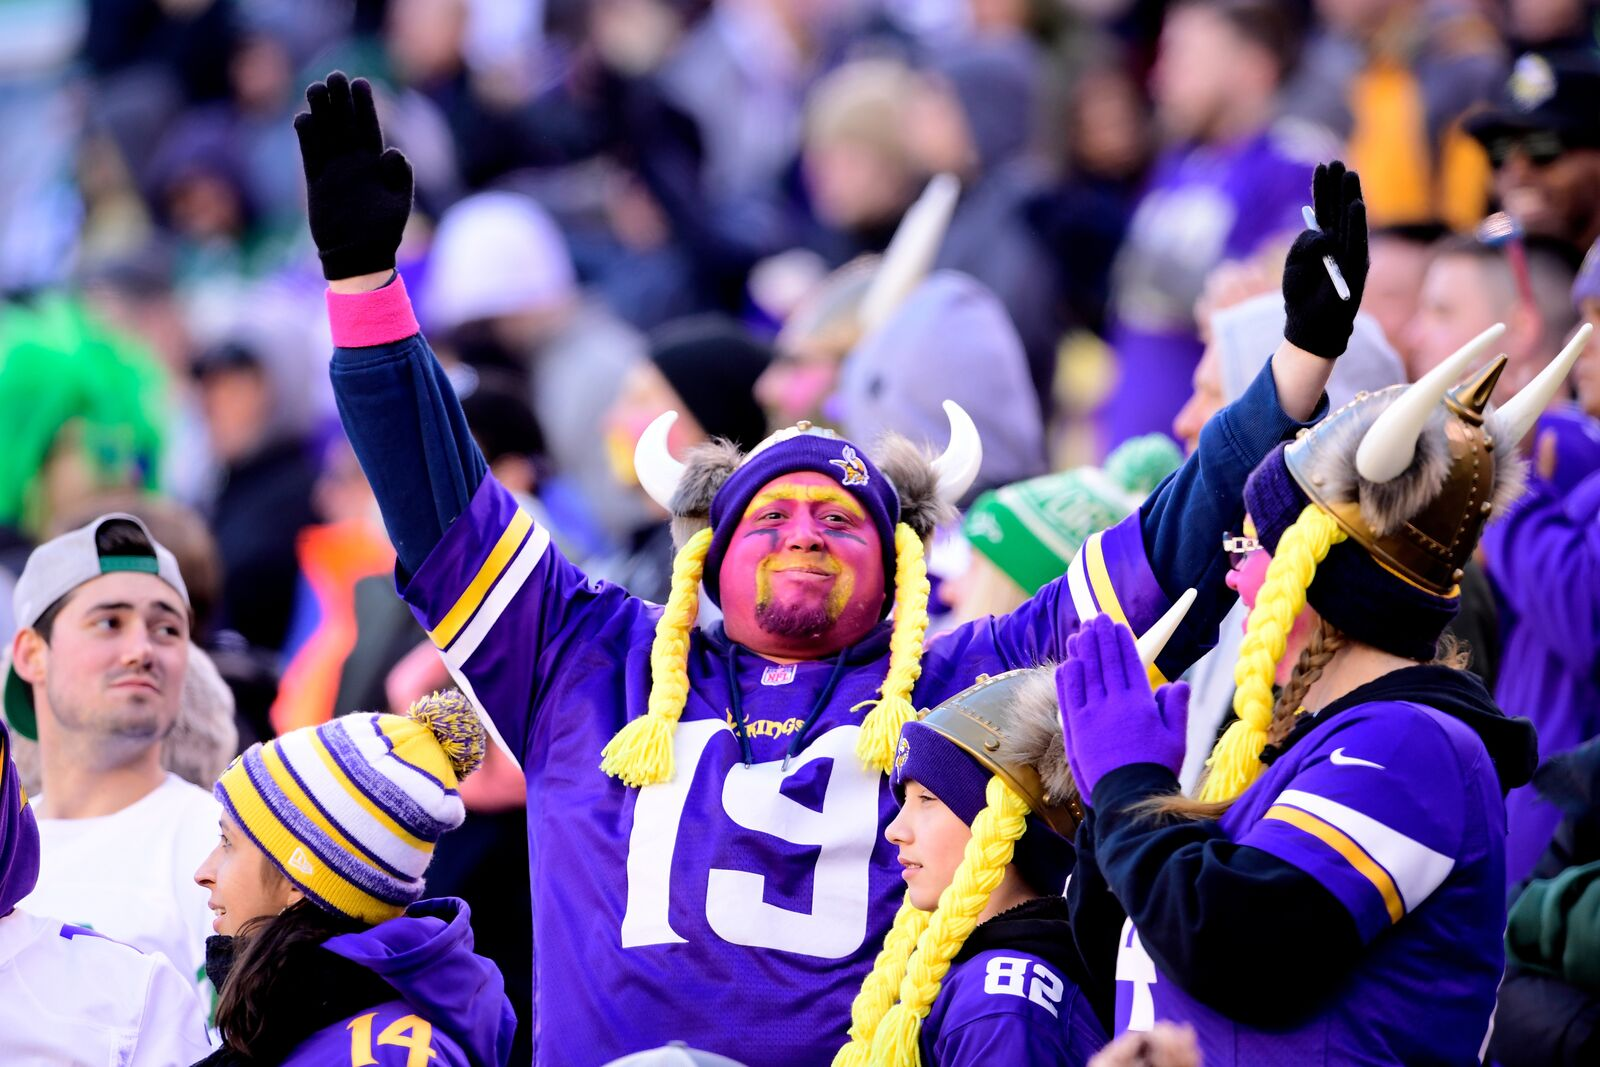 EAST RUTHERFORD, NJ - OCTOBER 21: A Minnesota Vikings fan cheers on his team against the New York Jets at MetLife Stadium on October 21, 2018 in East Rutherford, New Jersey. The Vikings defeated the Jets 37-17. (Photo by Steven Ryan/Getty Images)